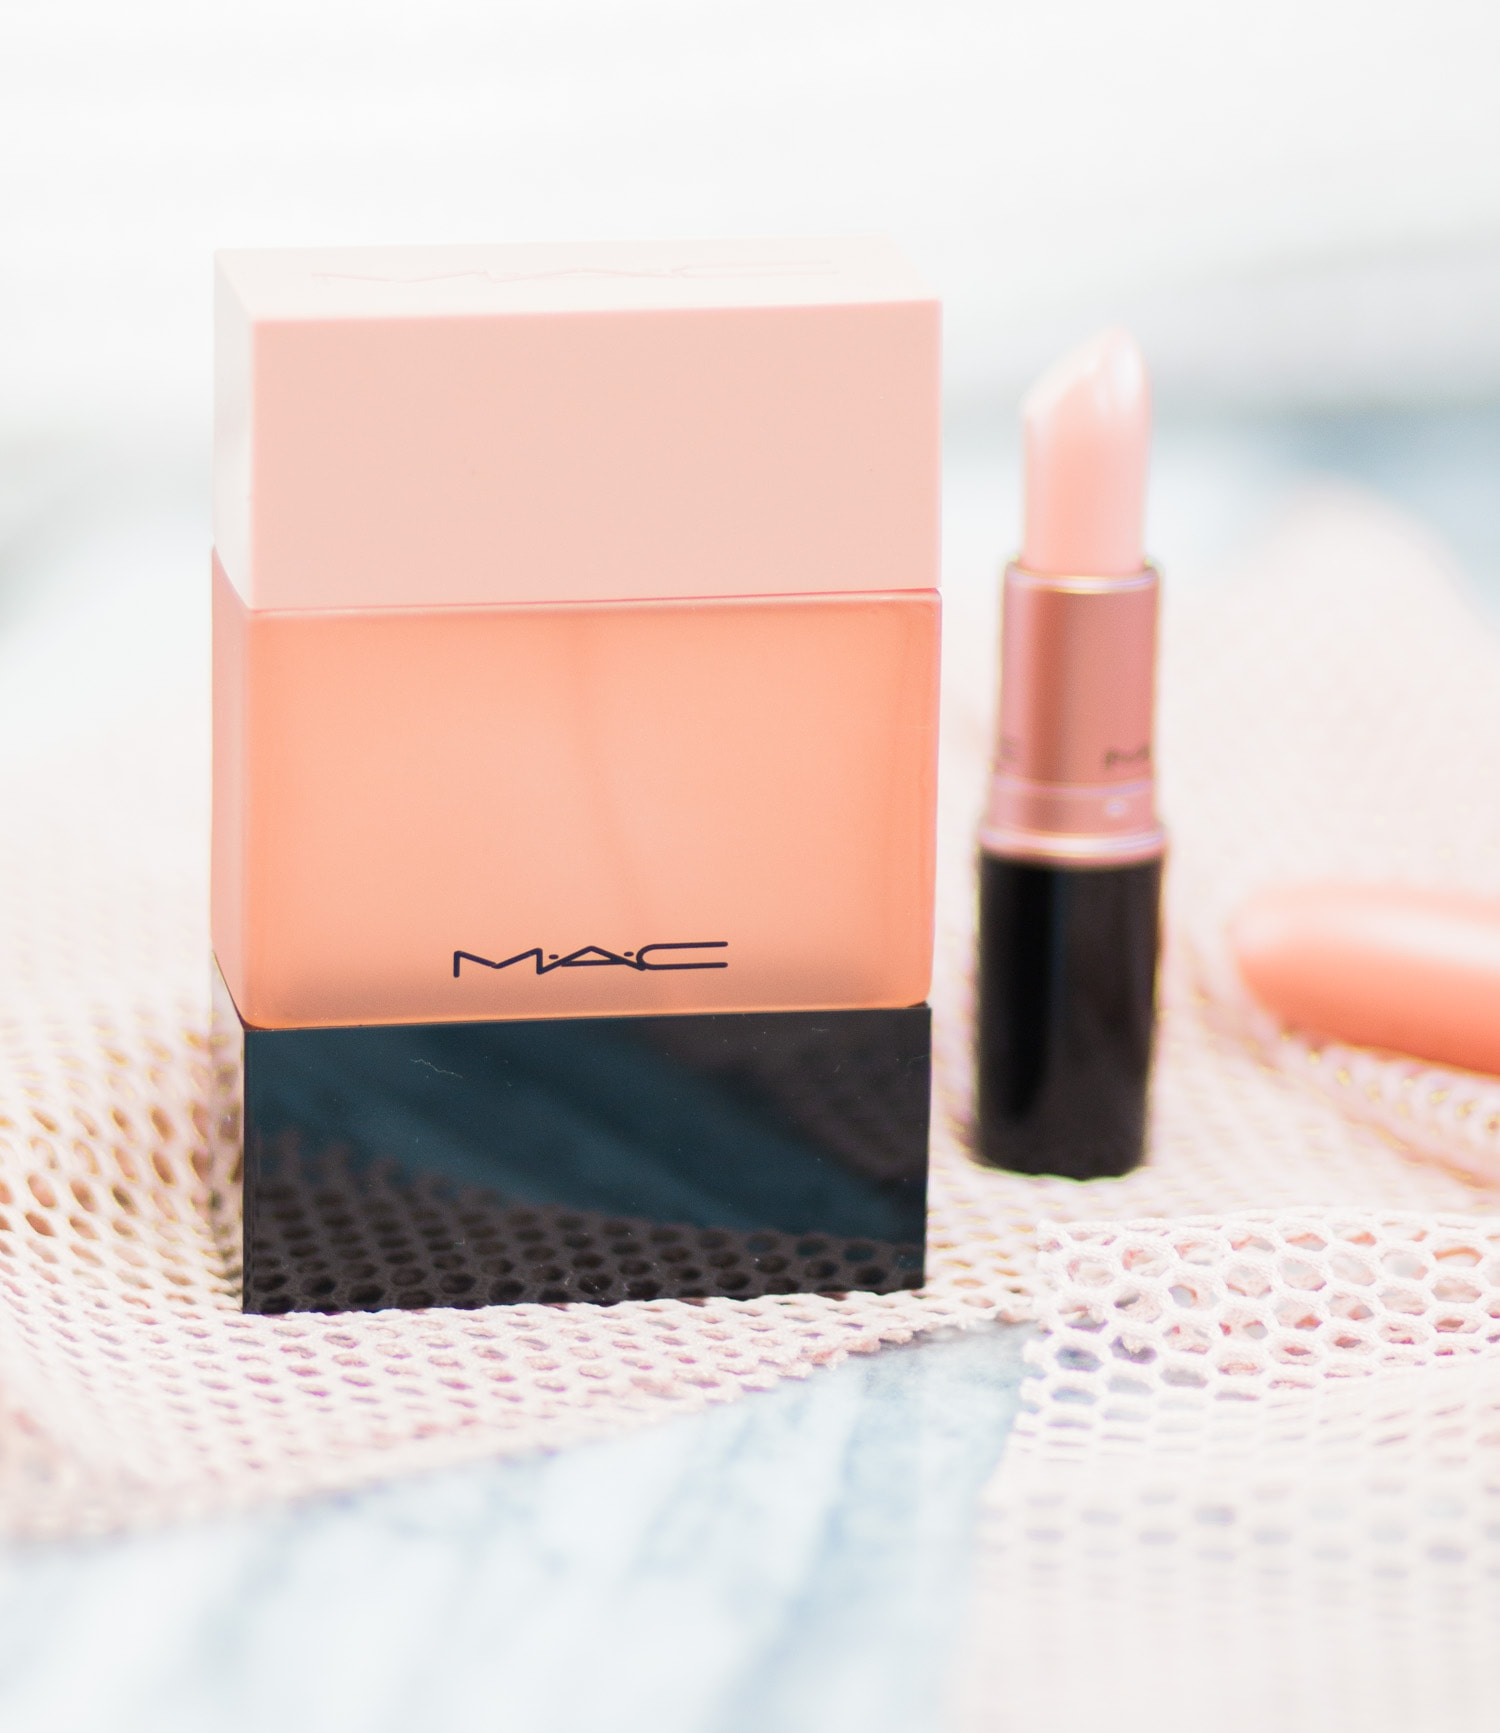 A full review of the MAC Shadescents Creme D'Nude perfume and lipstick by Orlando, Florida, beauty blogger Ashley Brooke Nicholas